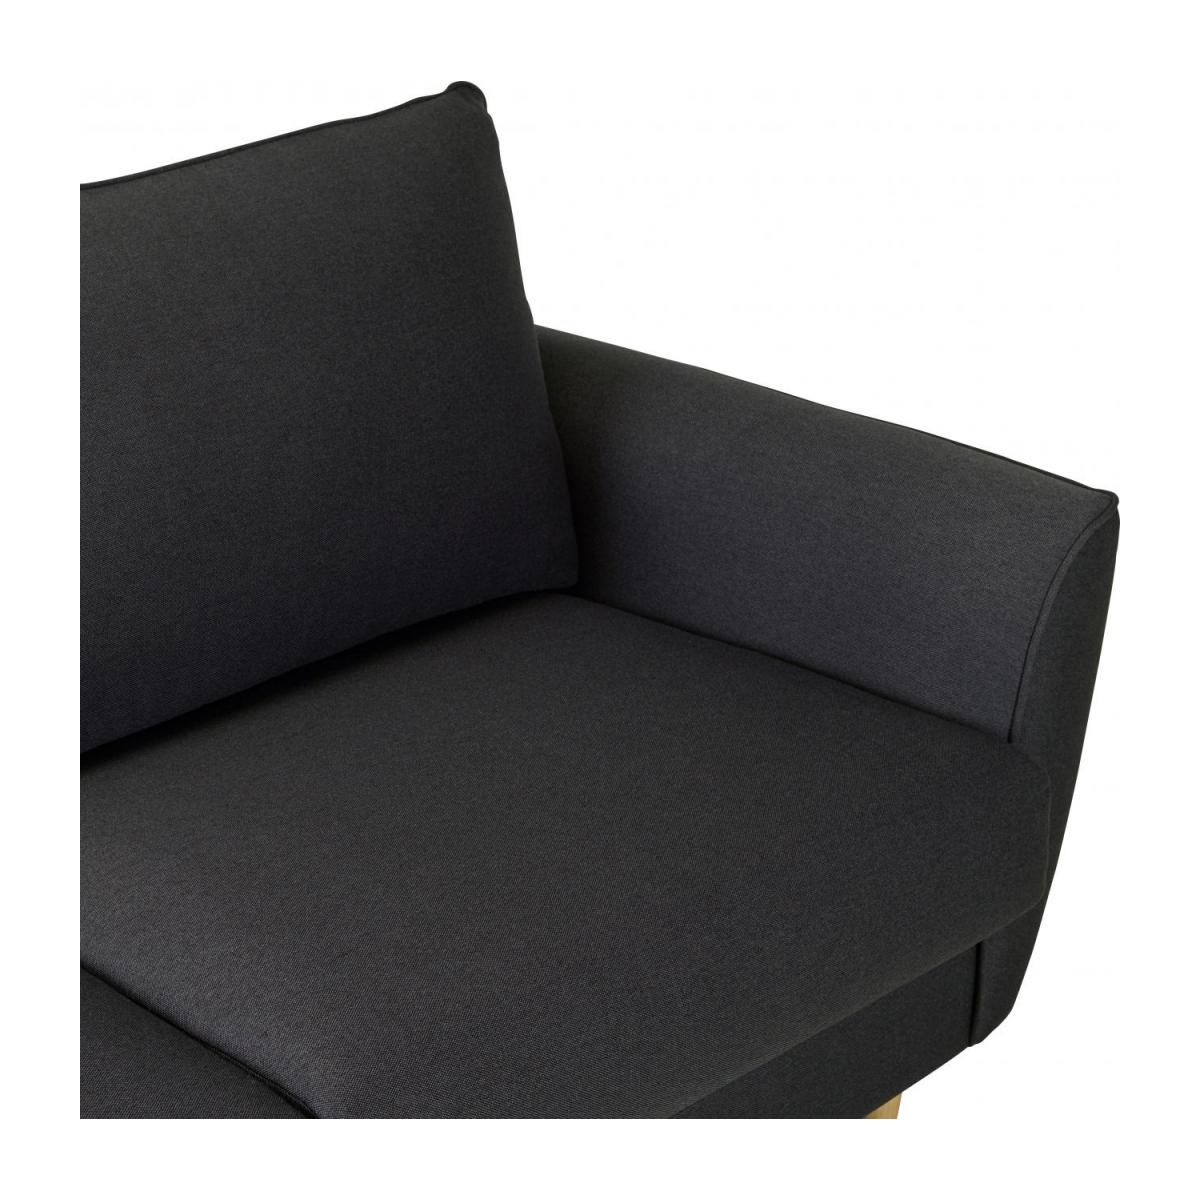 3 seater Sofa Bed with slatted base n°7